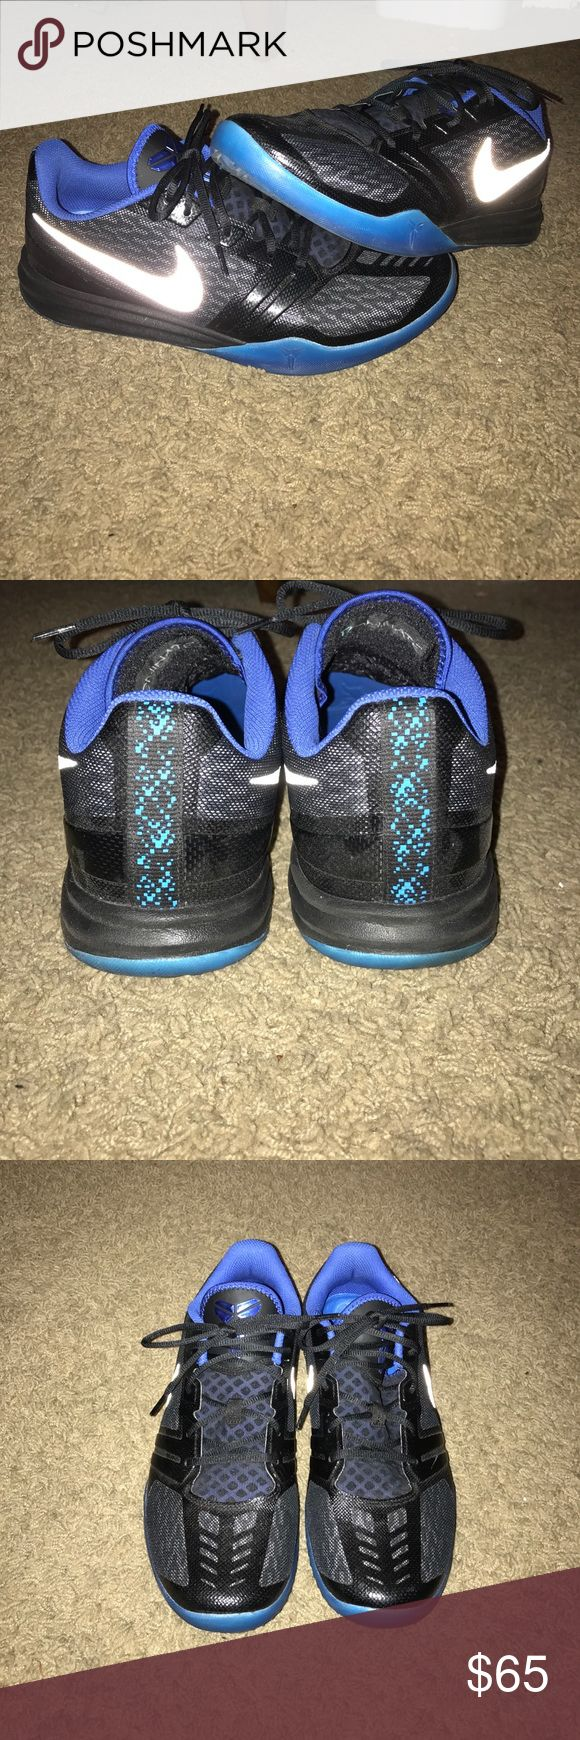 Nike Men's Kobe Basketball Shoe Perfect condition, no wear and tear, worn 3 times. Size 11.5 Nike Shoes Athletic Shoes